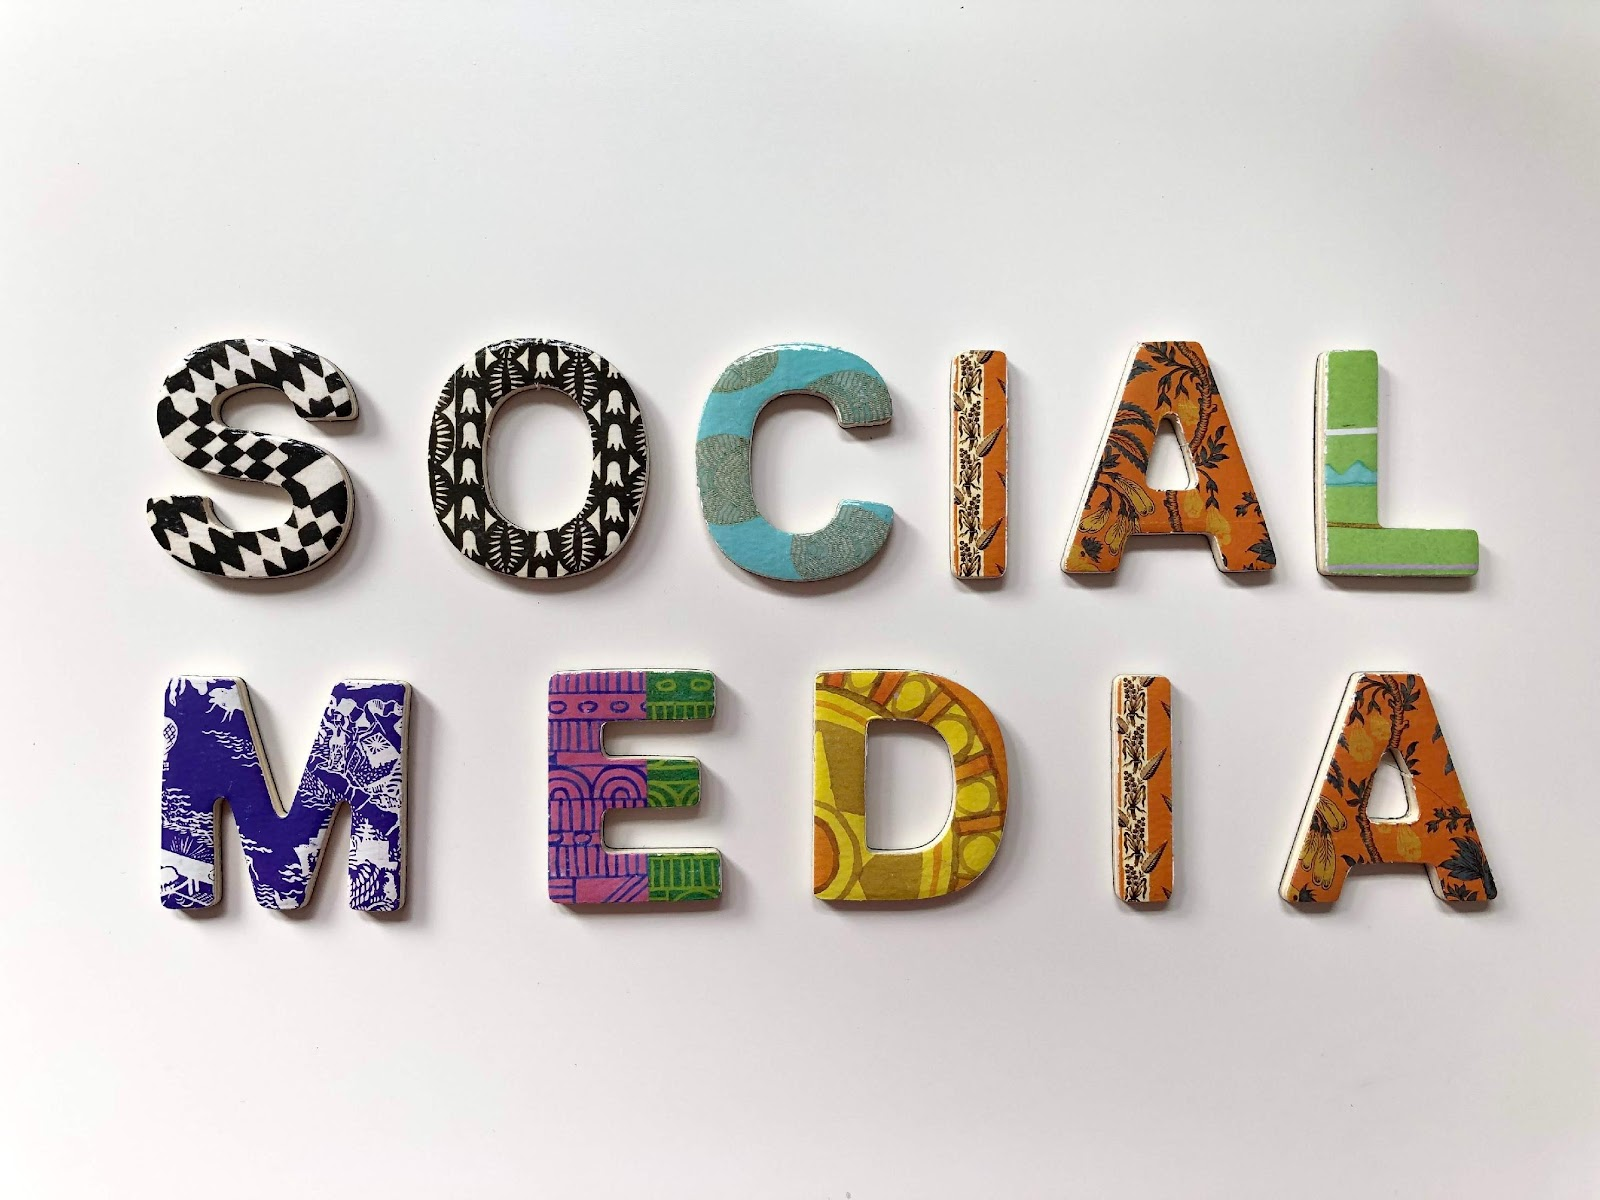 Ways how to grow your business on social media WAYS TO USE SOCIAL MEDIA GROW YOUR BUSINESS